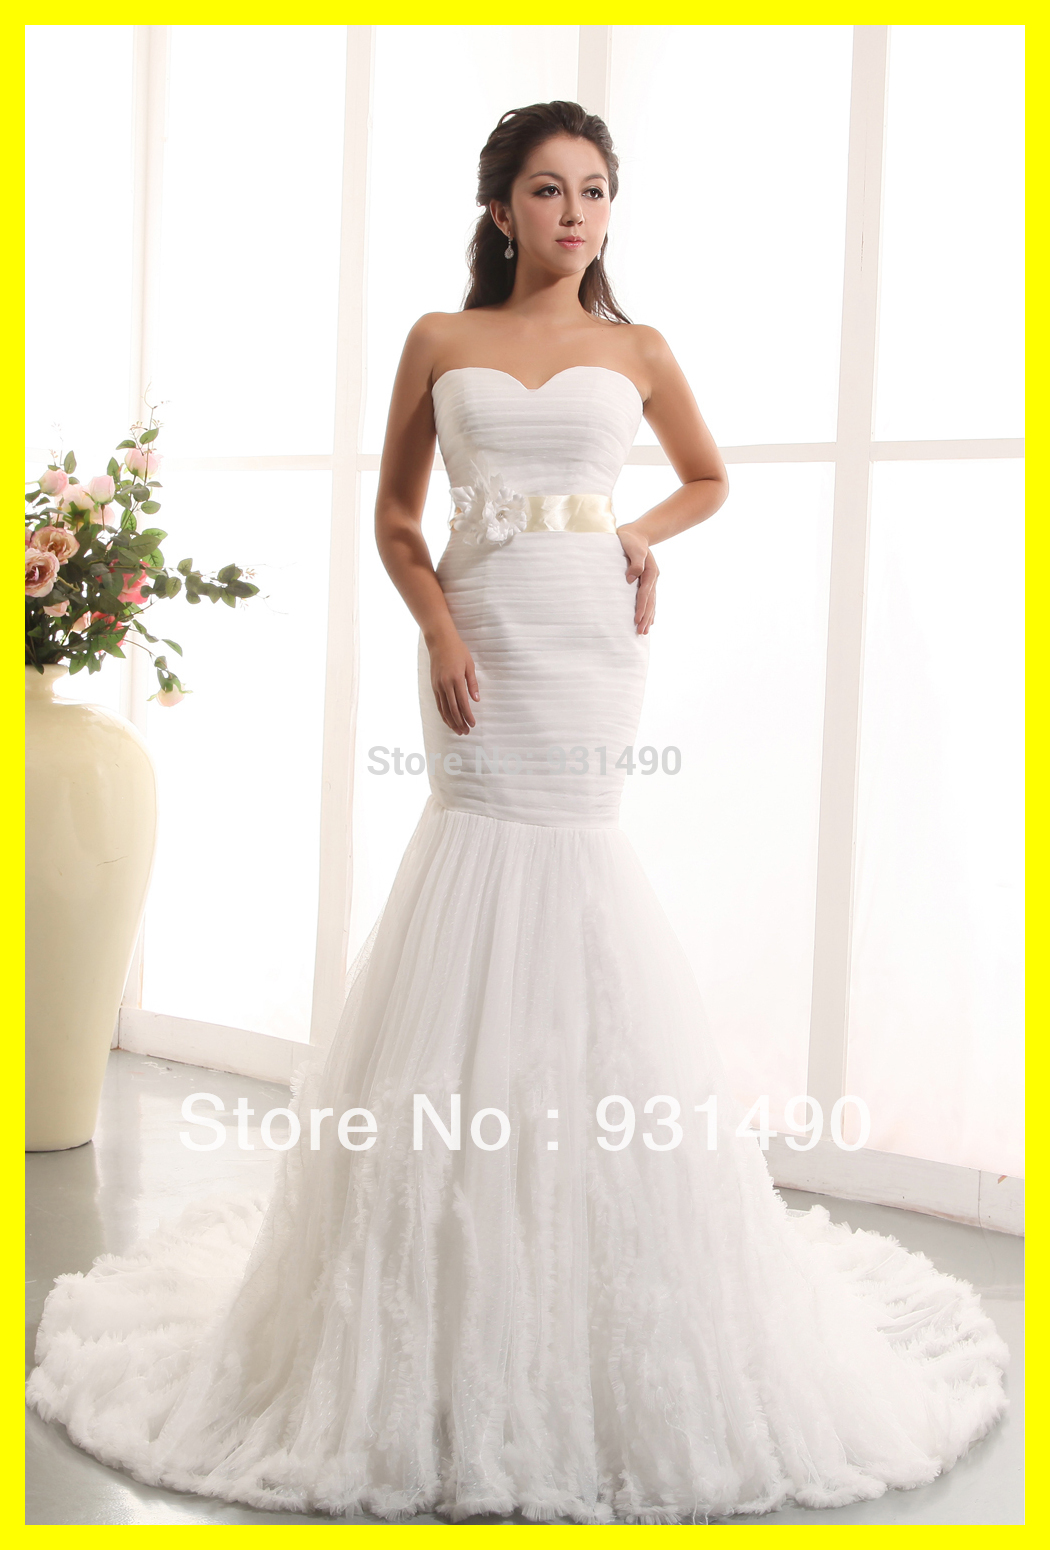 Cheap gypsy wedding dresses for sale discount wedding for Wedding dress for sale cheap